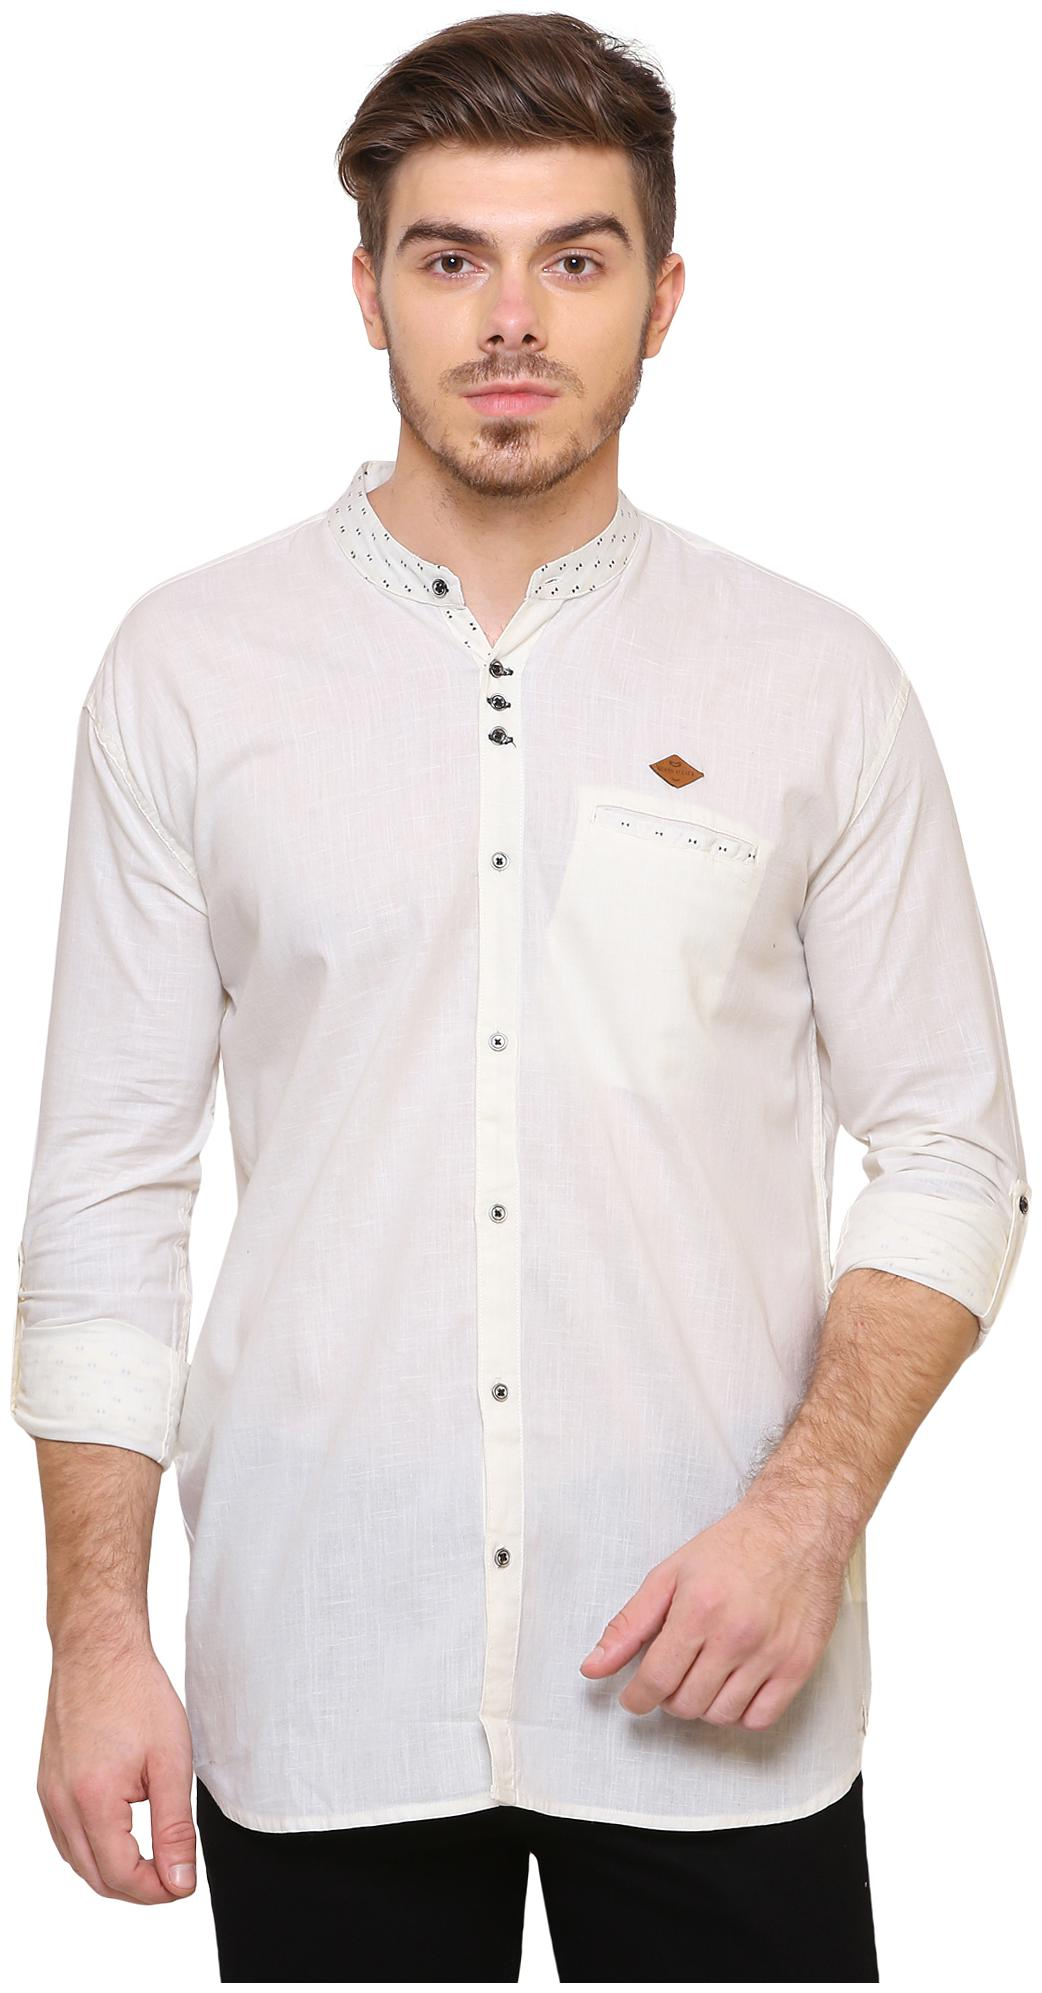 Kuons Avenue Men White Solid Slim Fit Casual Shirt